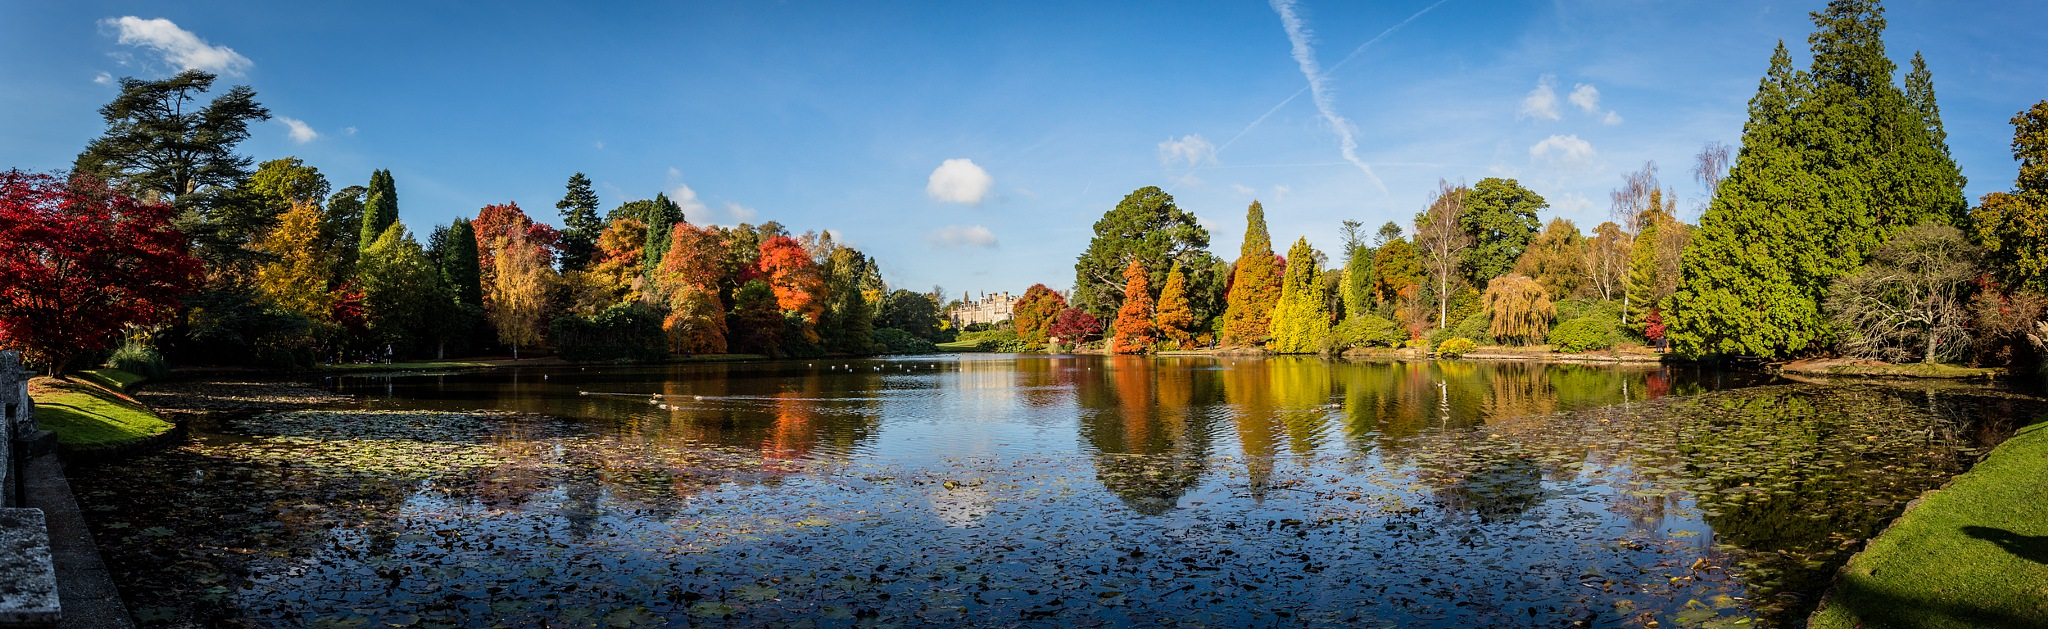 Sheffield Park in the autumn by Stephen Johnson Photography